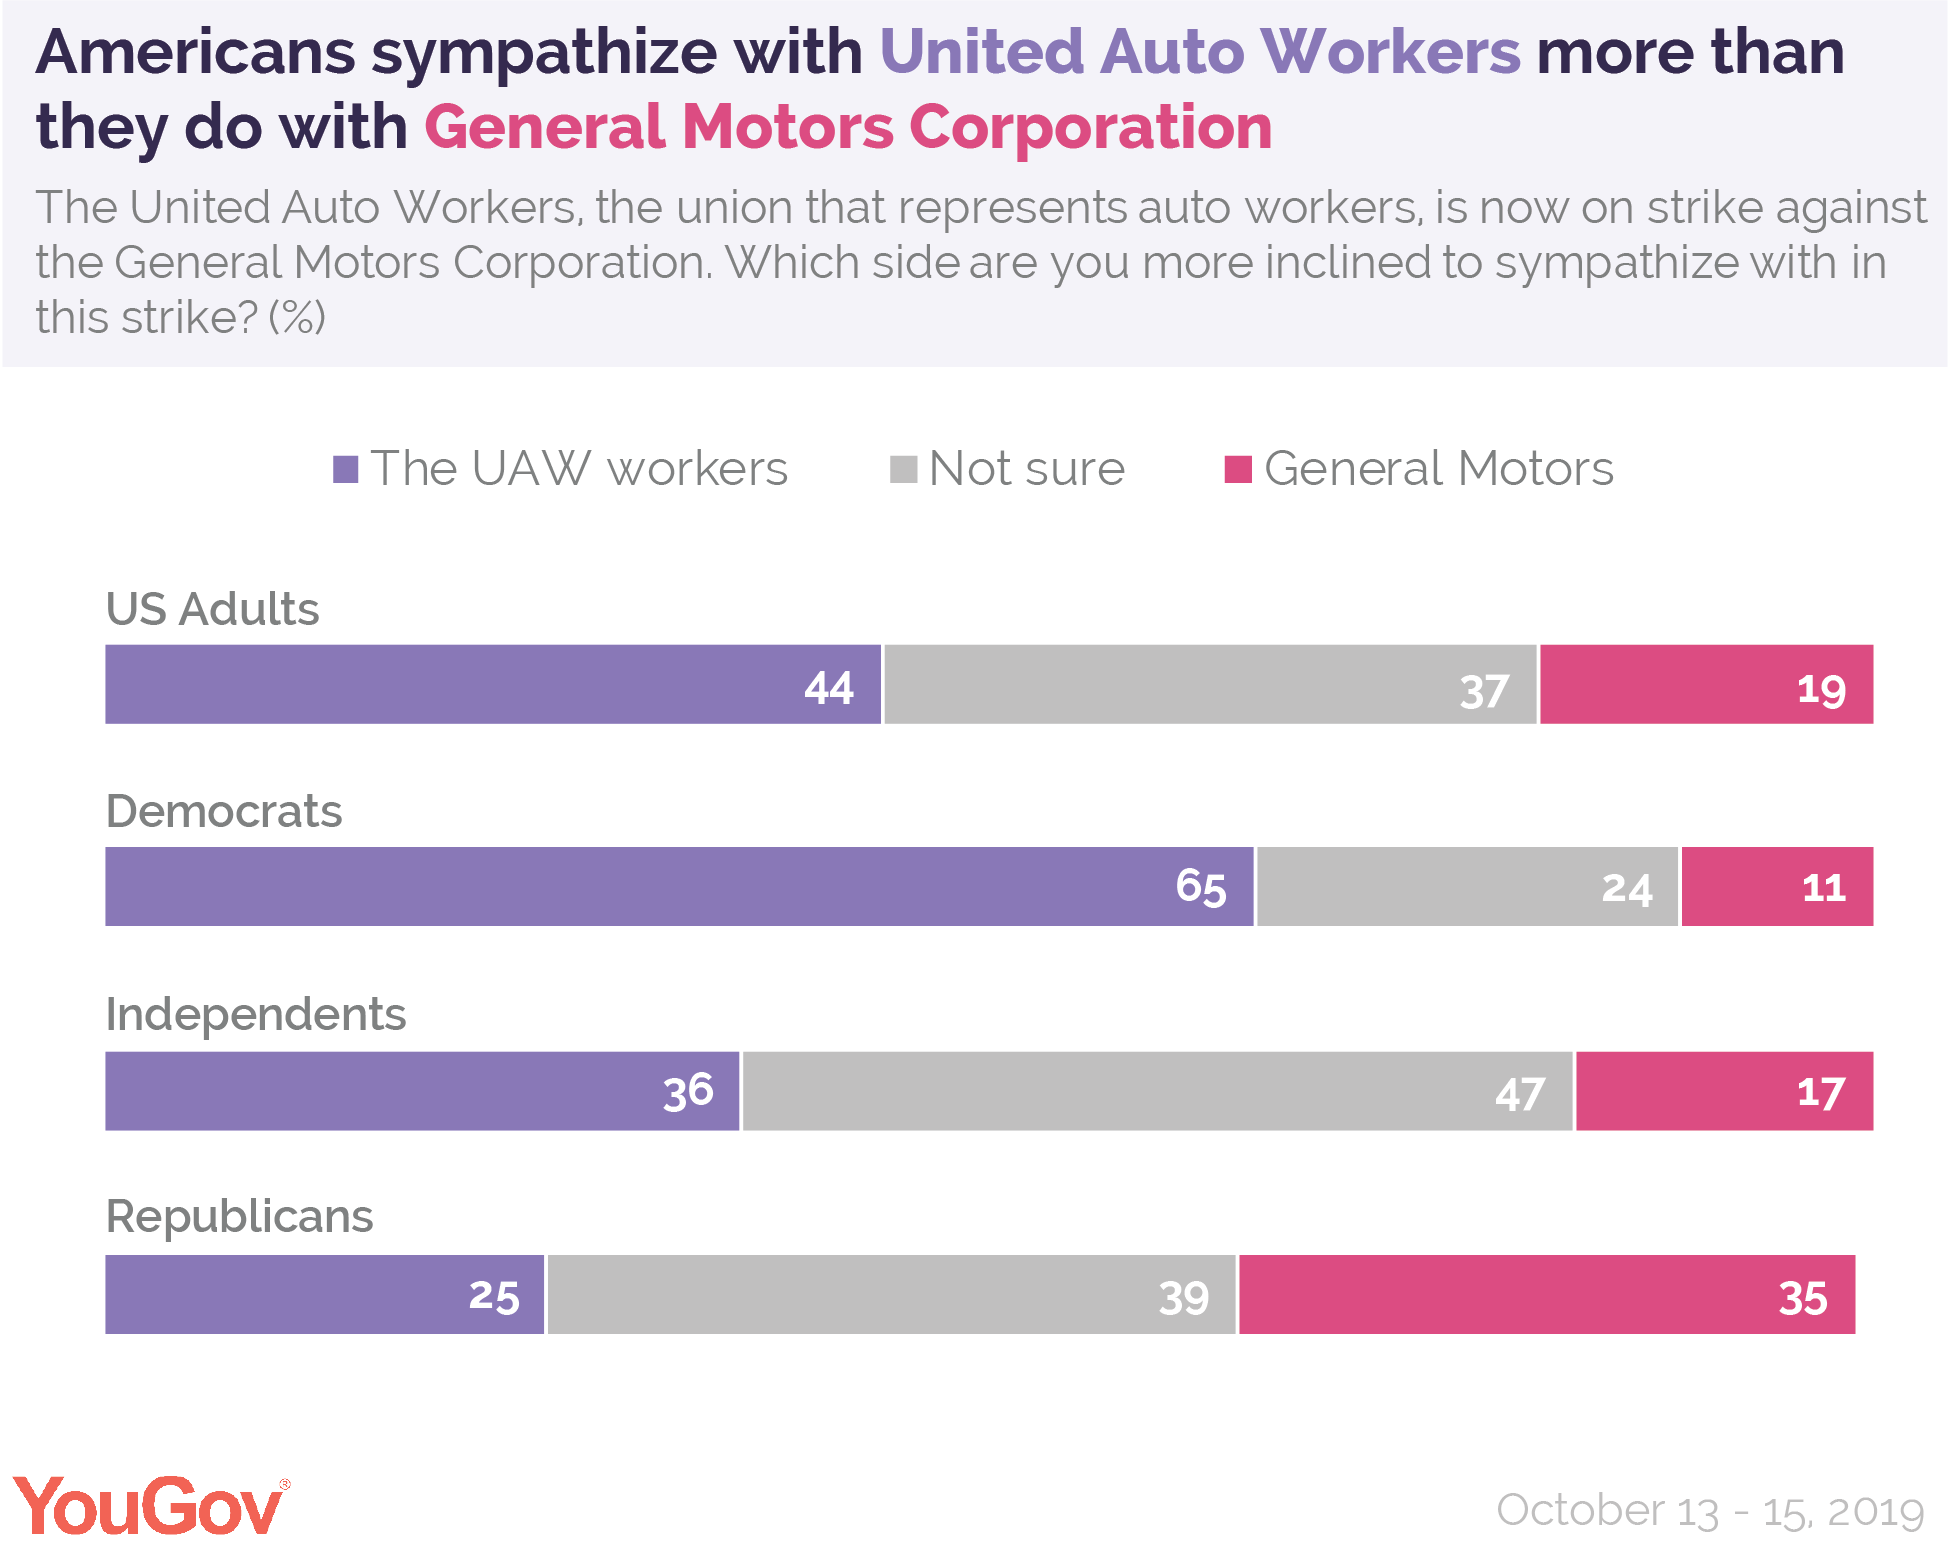 Americans sympathize with United Auto Workers more than they do with General Motors Corporation